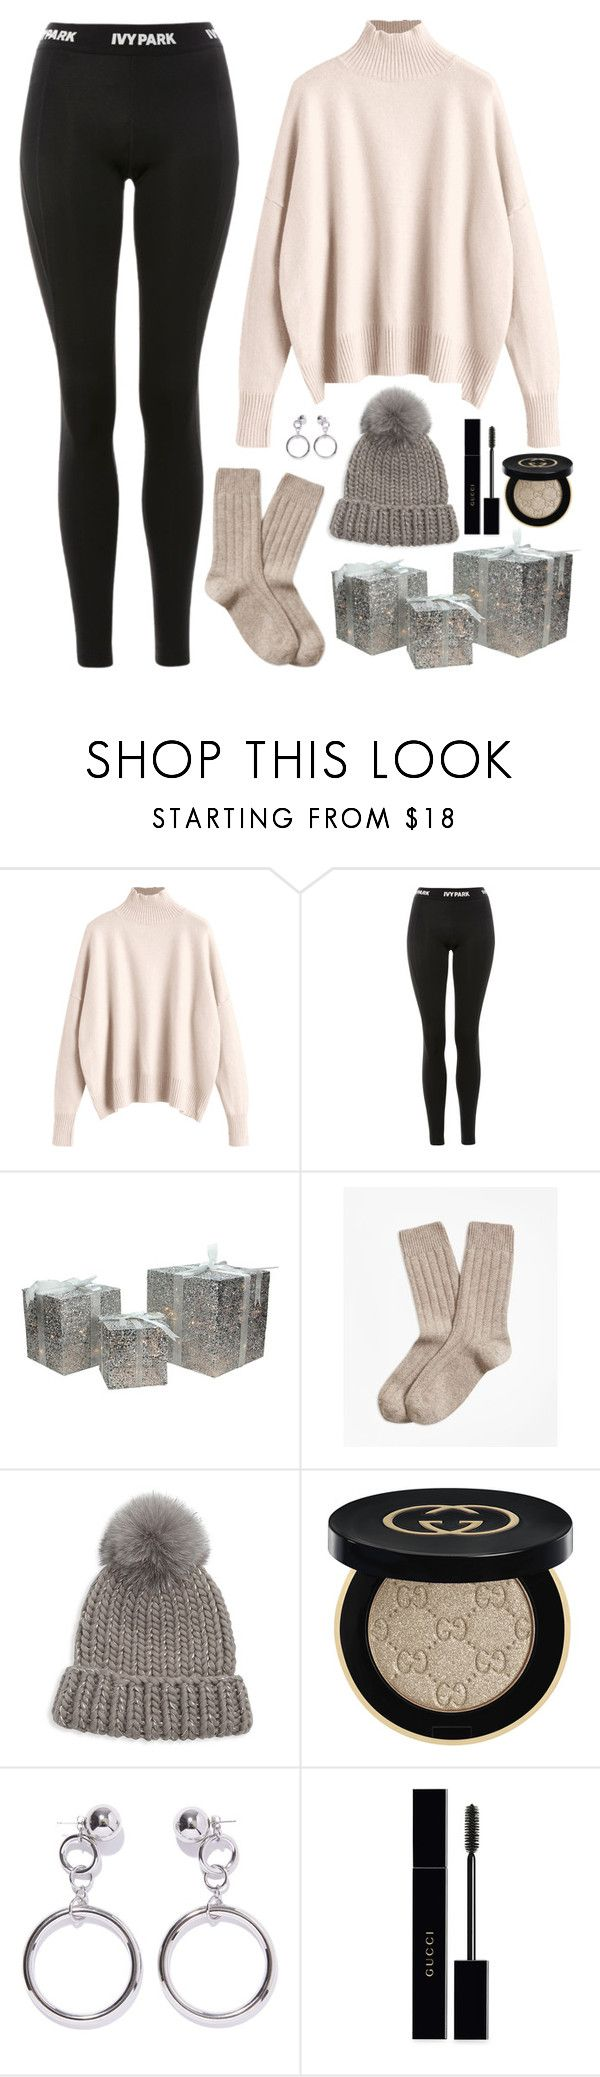 """""""Jeonghan X Wrapping Christmas Presents"""" by jleeoutfitters ❤ liked on Polyvore featuring Ivy Park, Northlight Homestore, Brooks Brothers, Eugenia Kim, Gucci and Ana Accessories"""